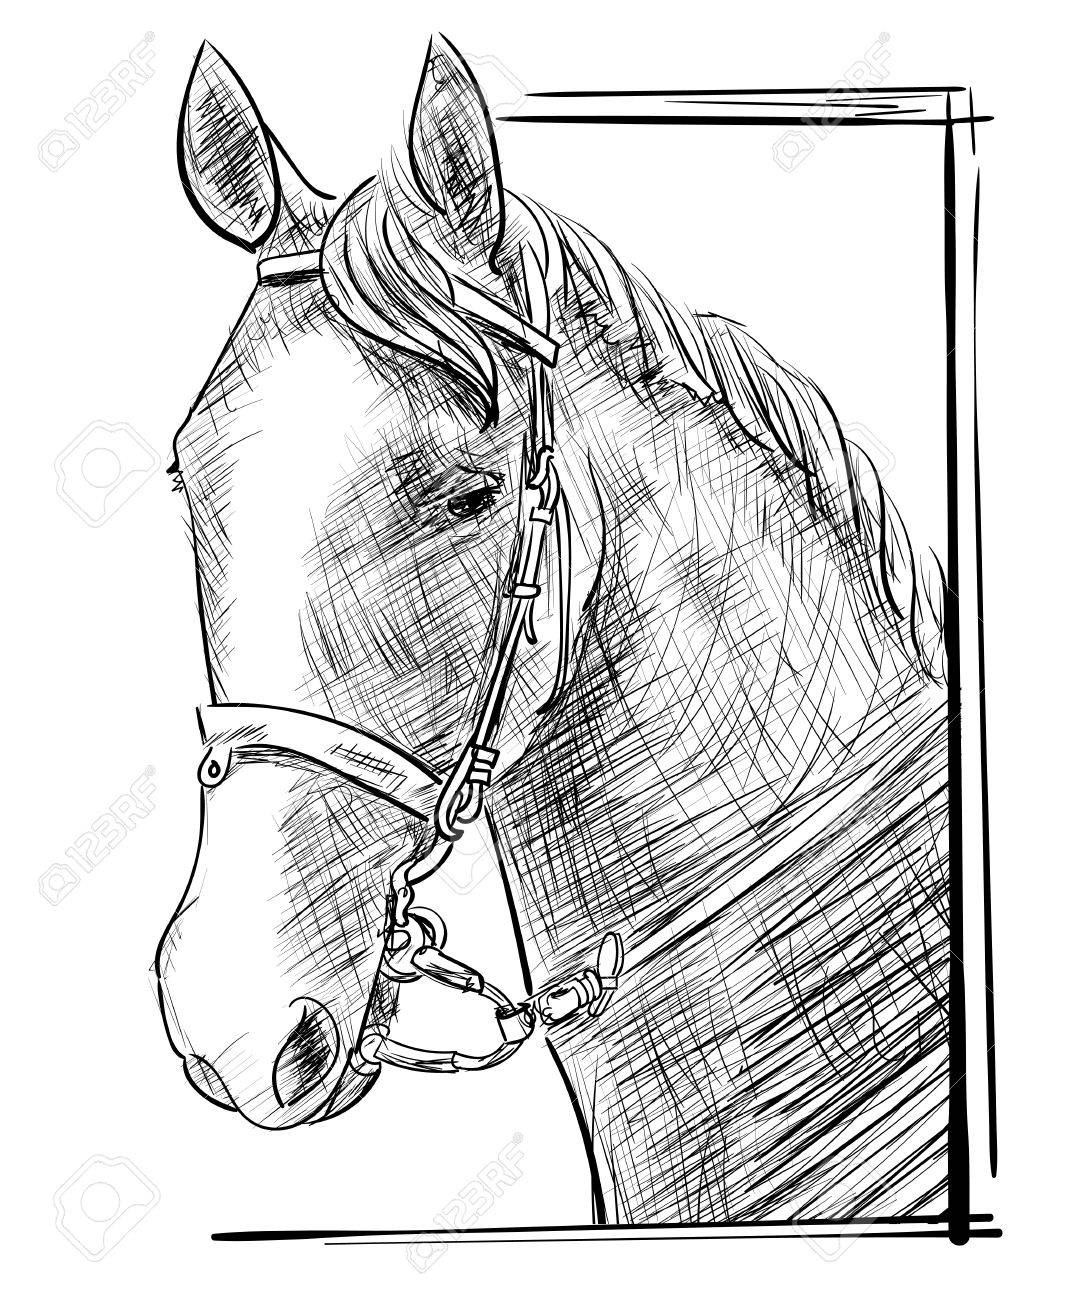 1083x1300 Vector Engraving Sketch Of Hand Drawn Horse Head In Harness